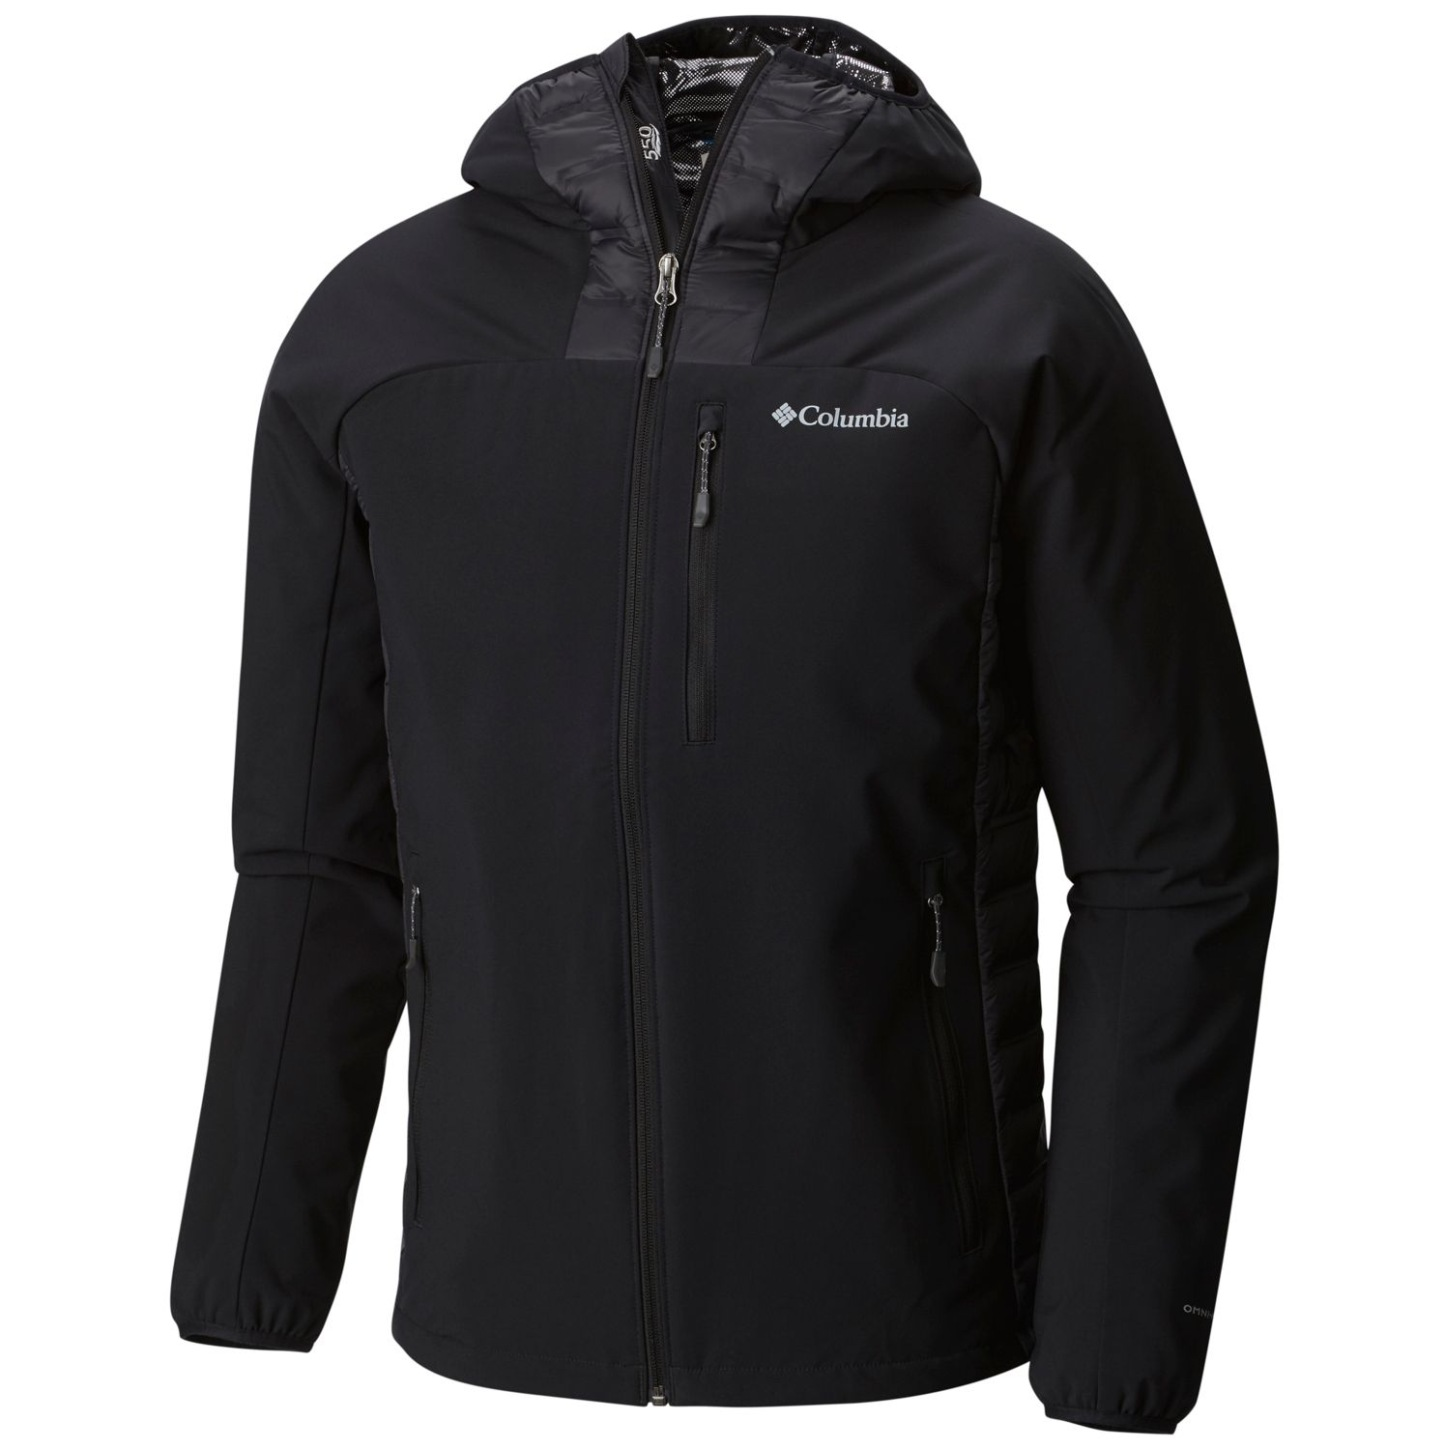 Columbia Men's Dutch Hollow Hybrid Jacket Black-30